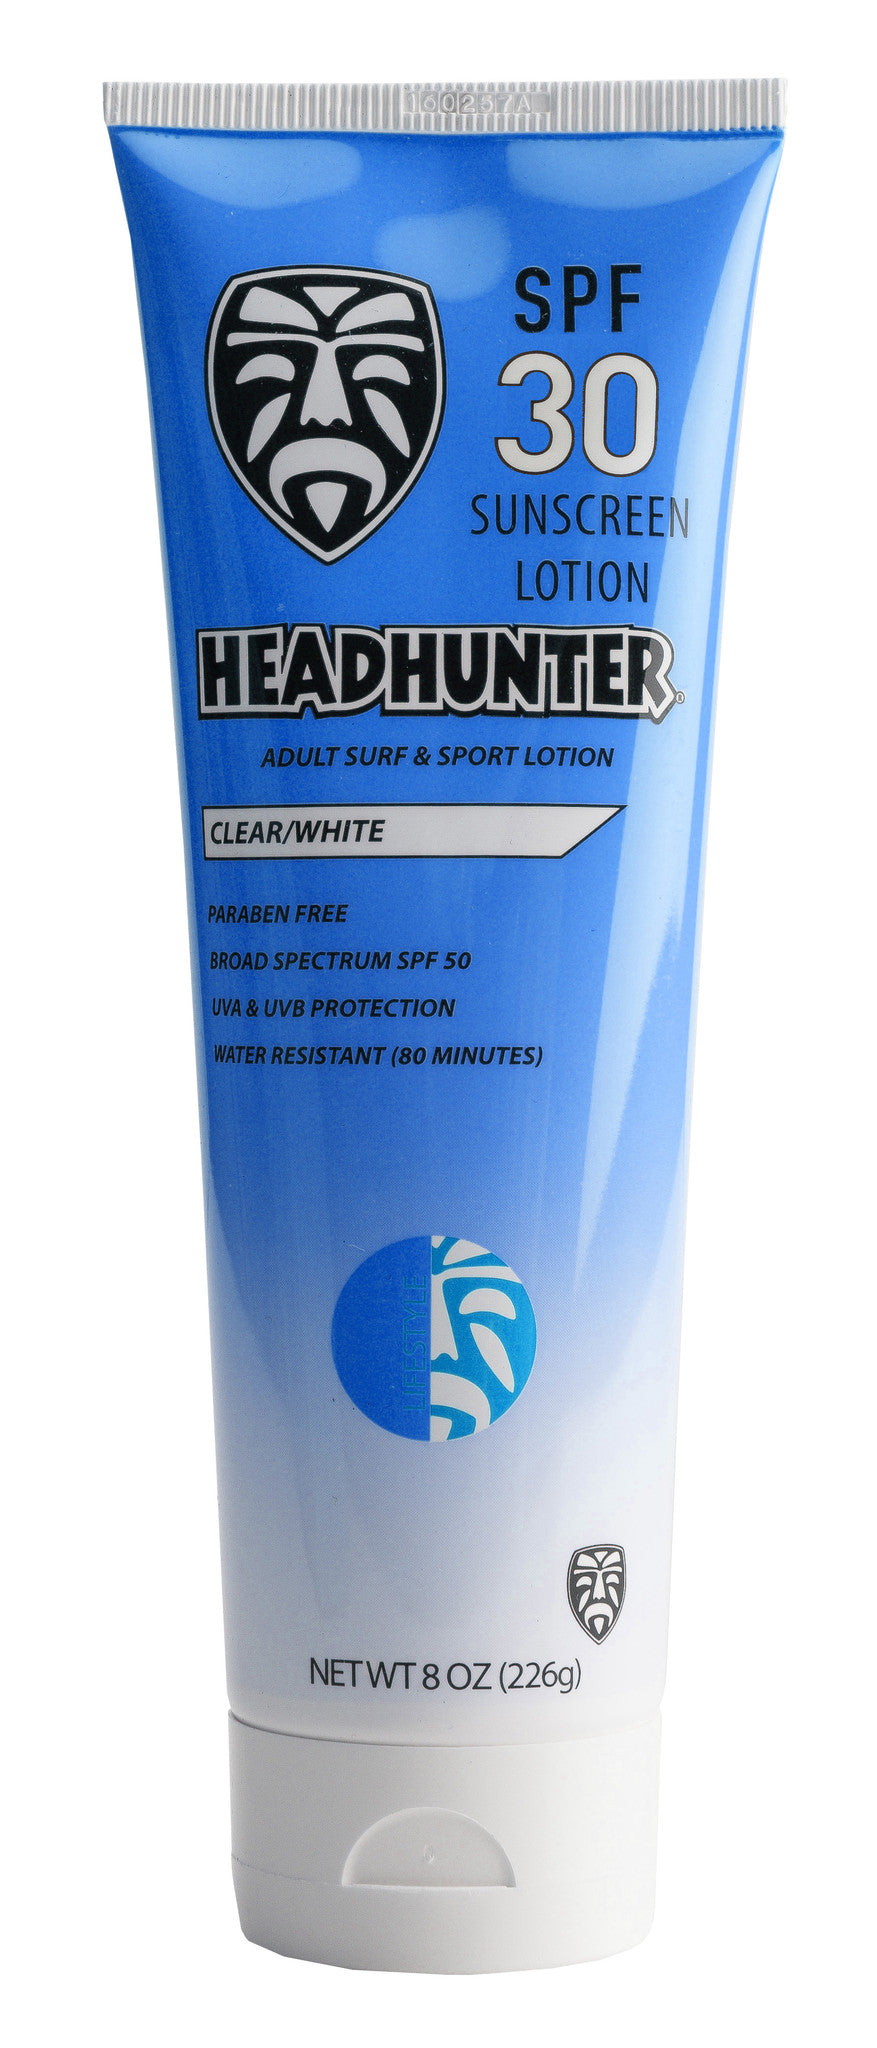 SPF 30 Sunscreen Surf & Sport Lotion